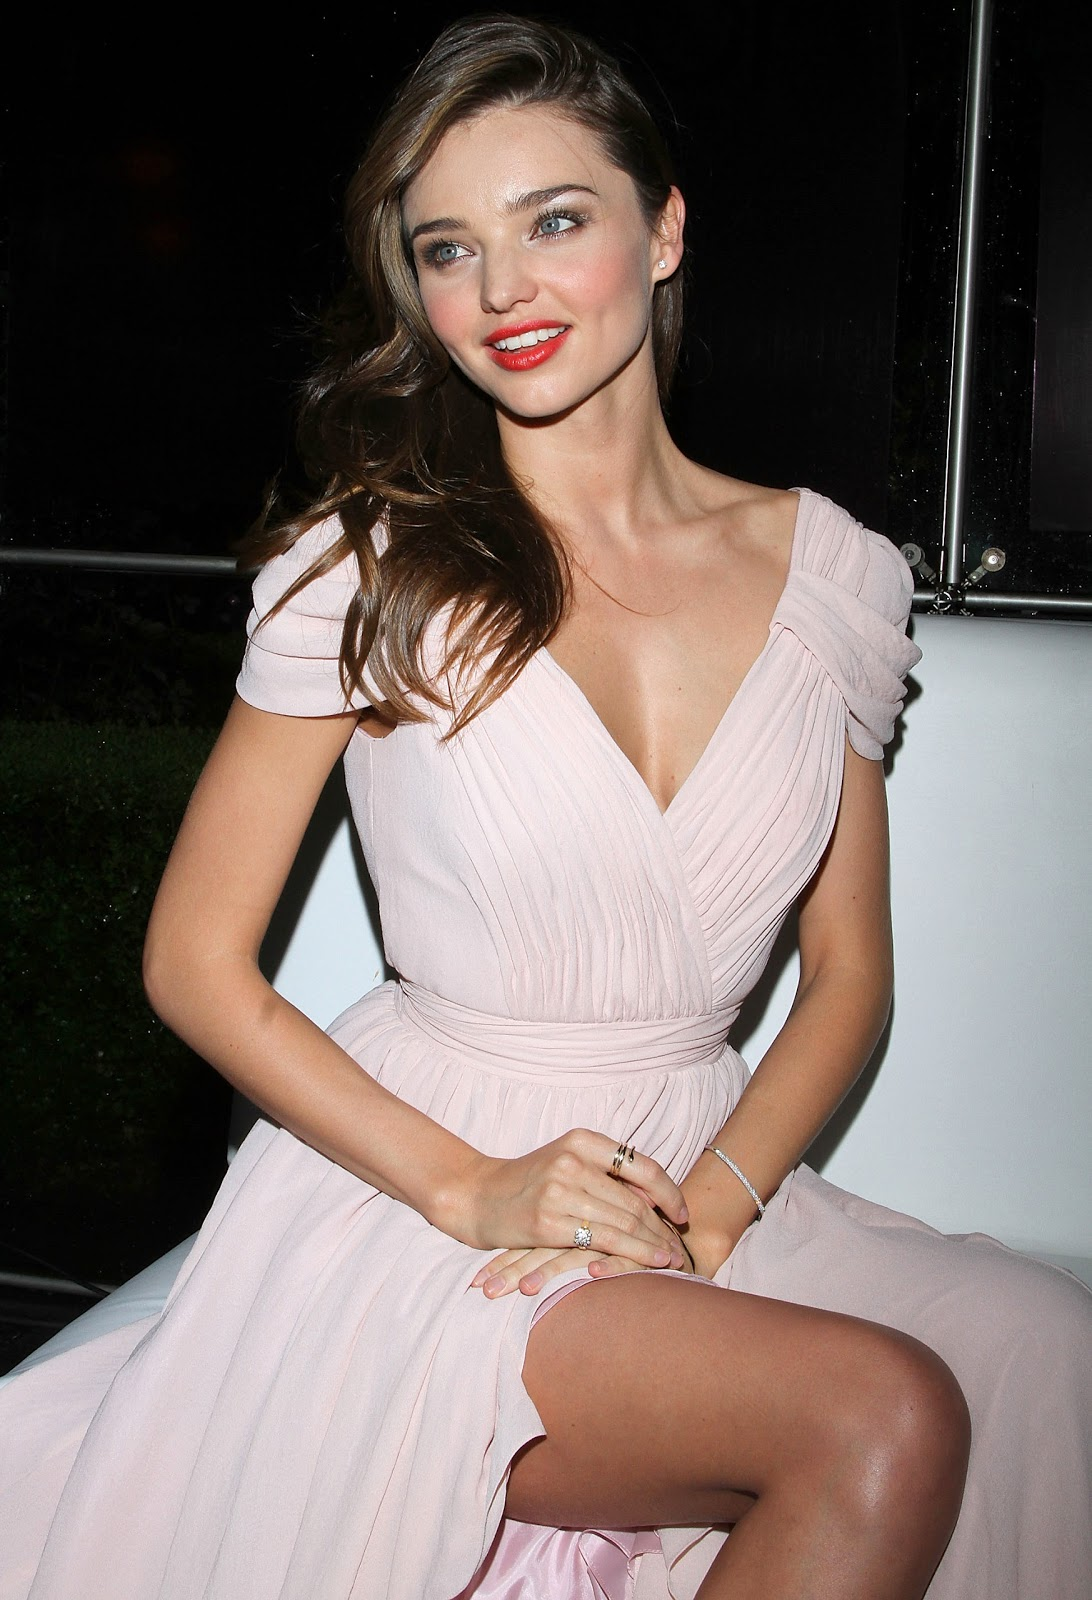 Miranda Kerr S Best Style Looks Ever: The Dress Of Every Girl's Dreams Worn By Miranda Kerr